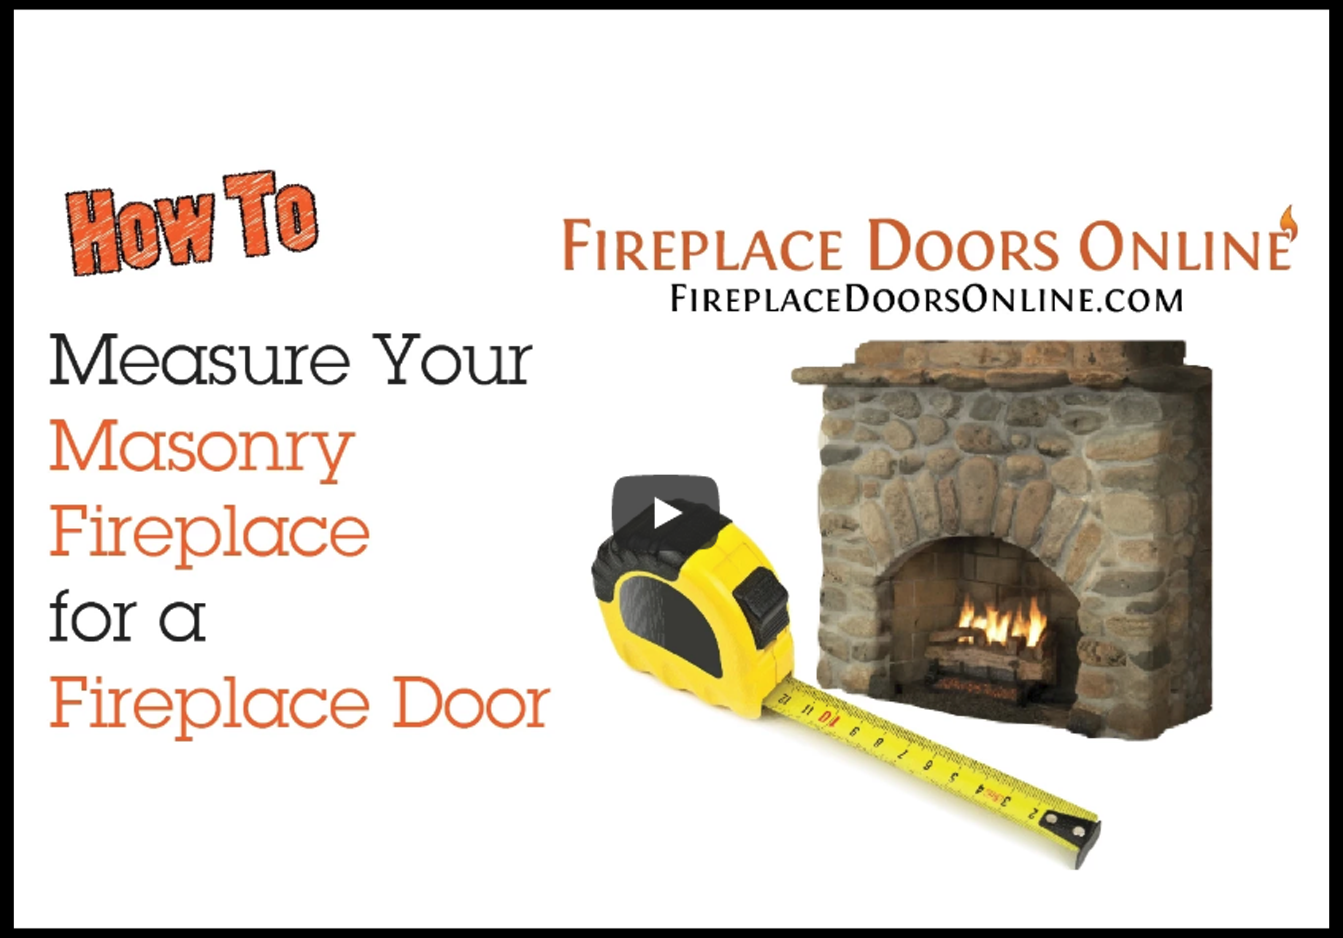 Video on measuring your masonry fireplace for a fireplace door